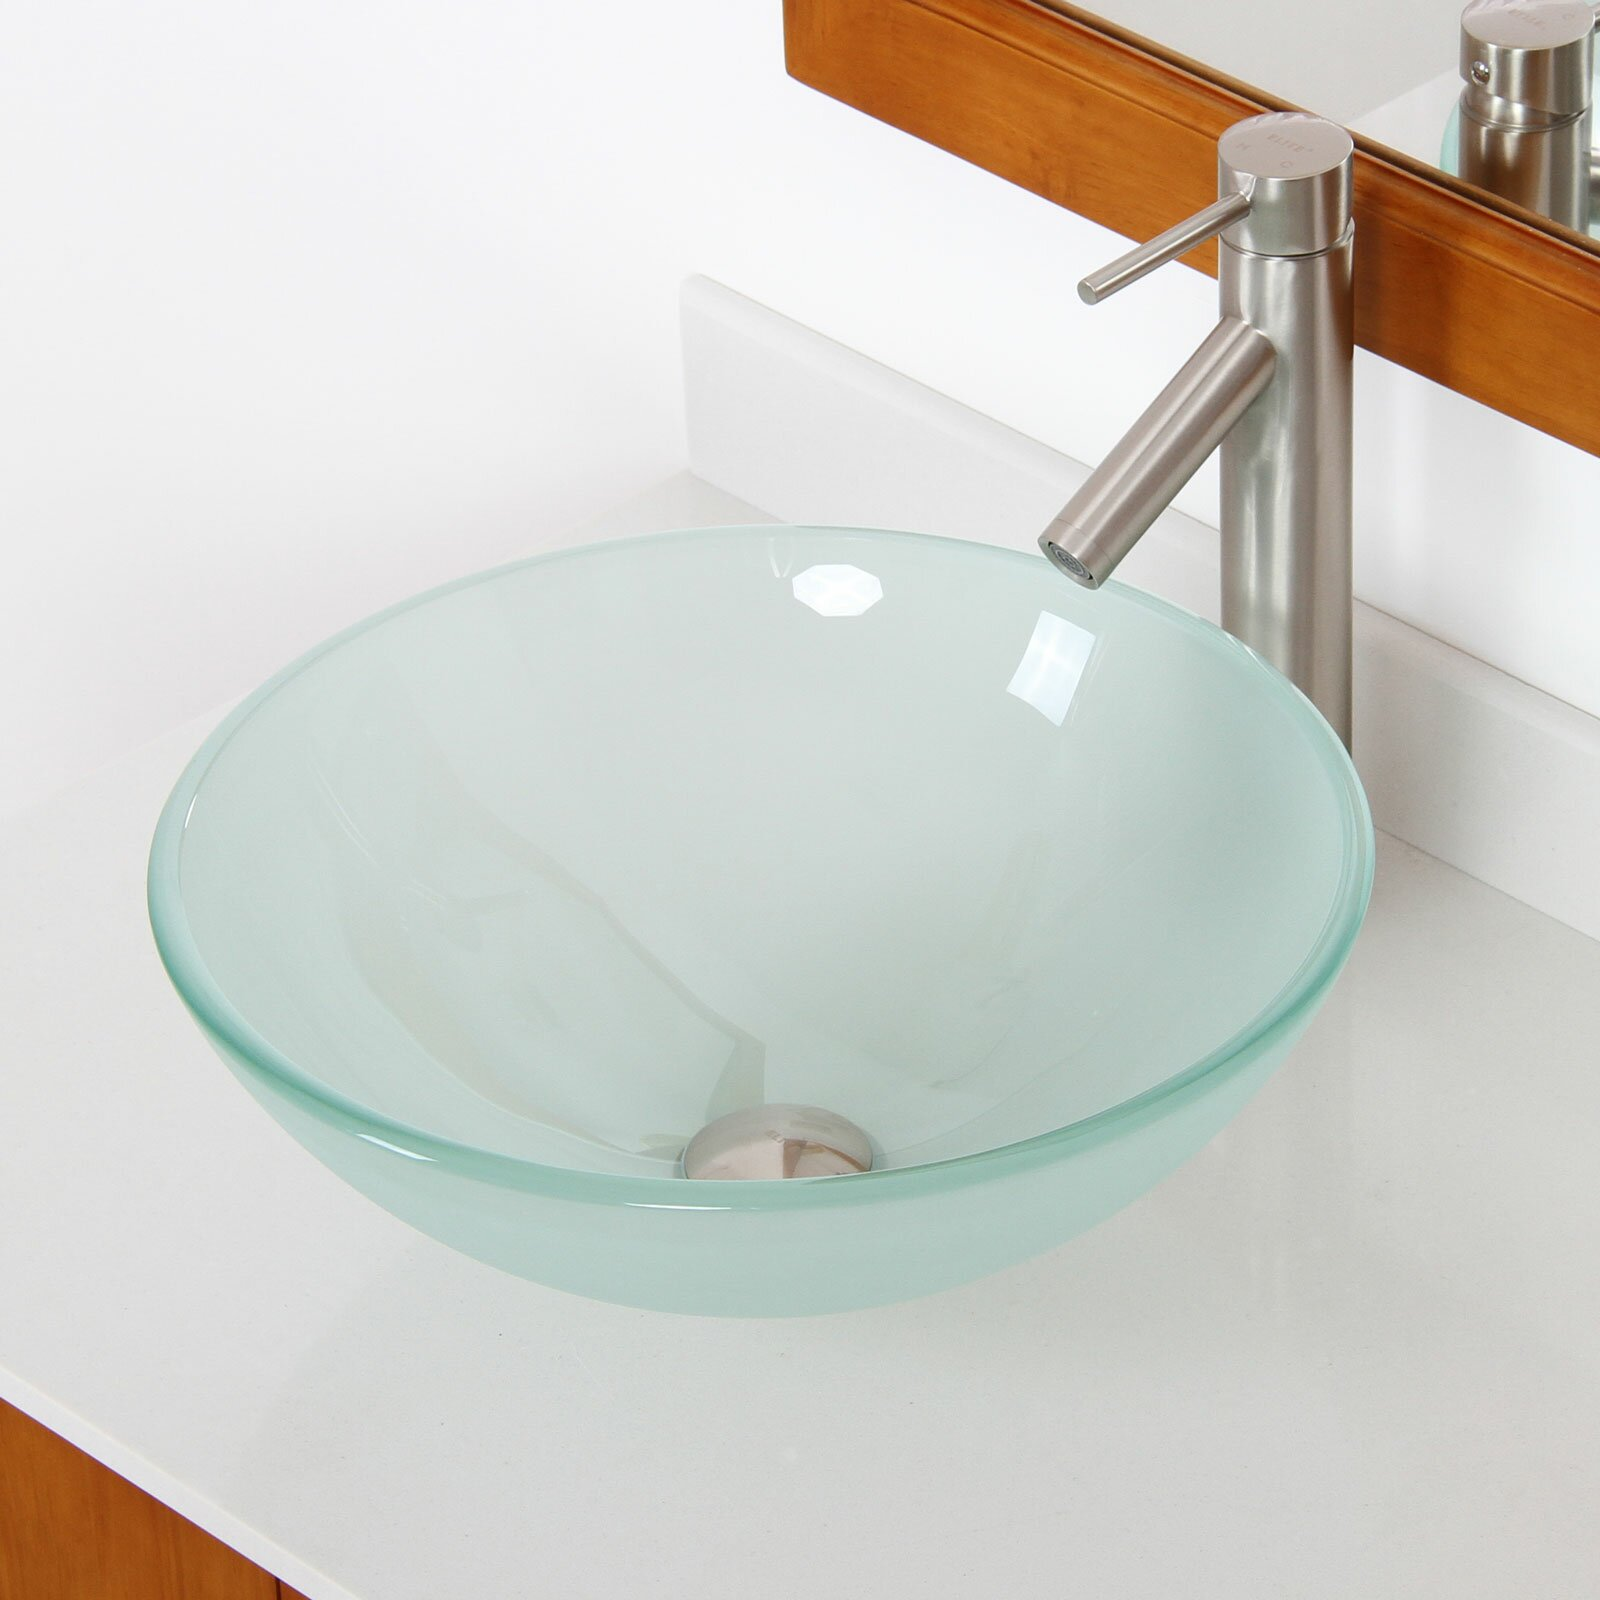 Bathroom Bowl Sinks With Modern Bathroom Sinks Glass Fish ...